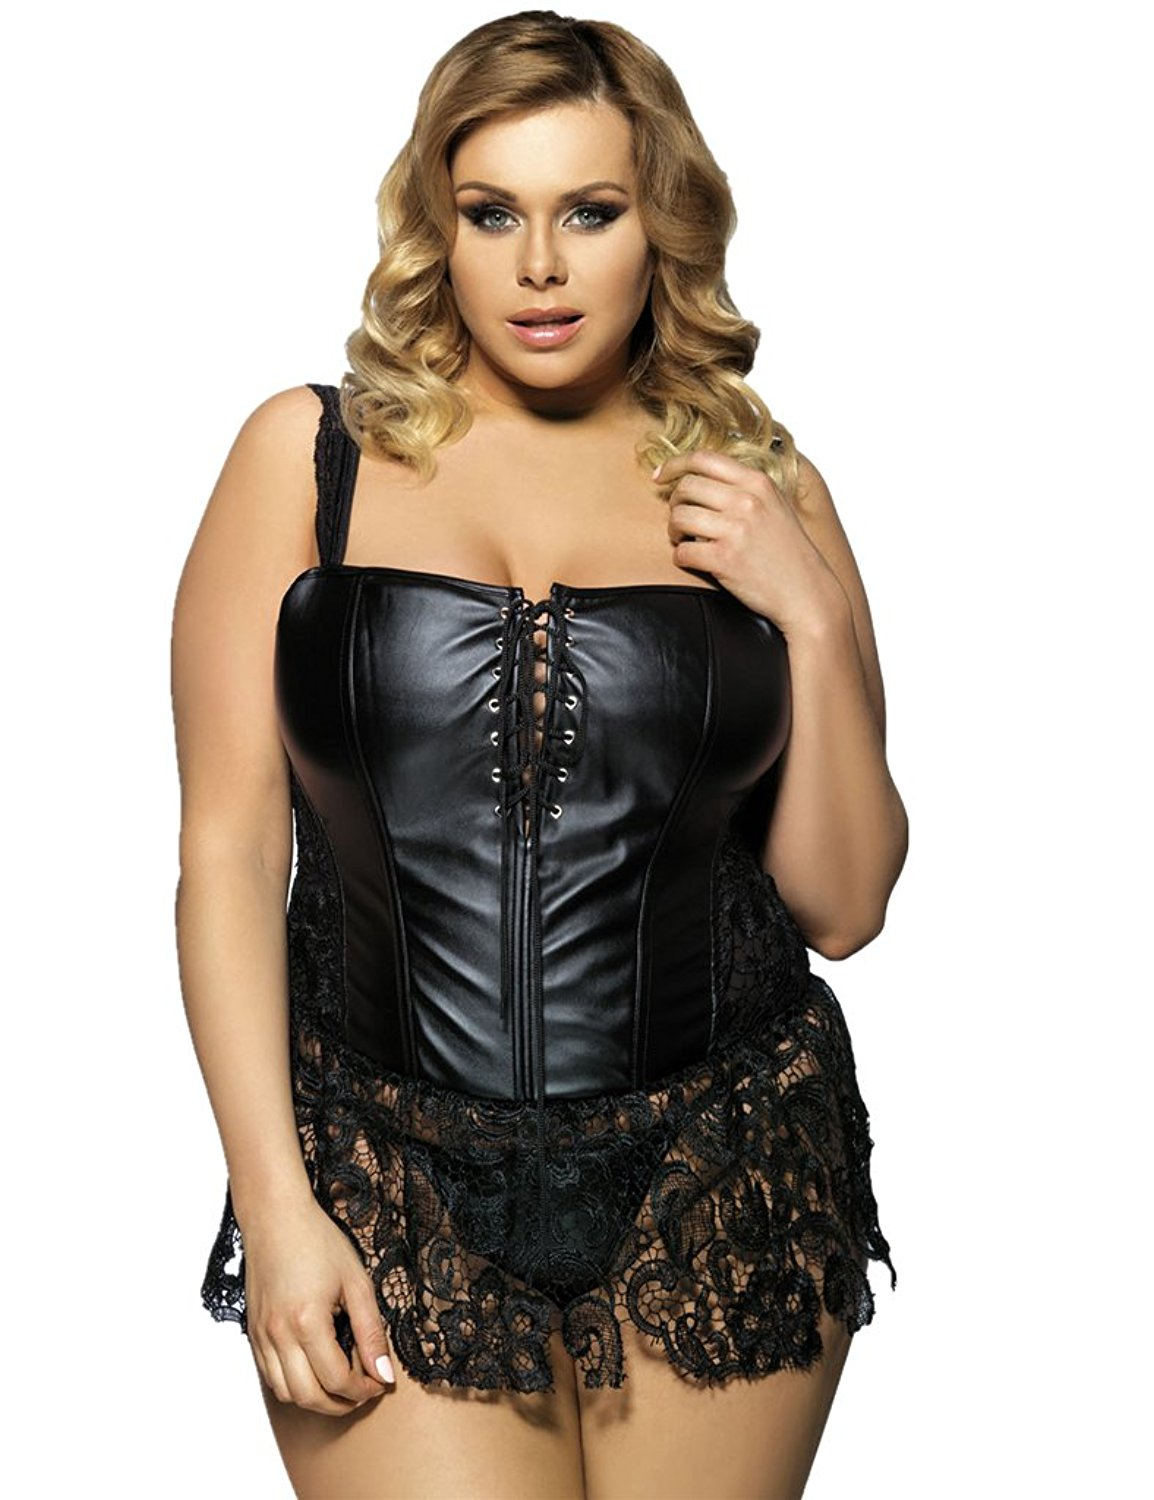 15aab99f479 Get Quotations · ohyeahlady Women Plus Size Corset Steampunk Faux Leather  Boned Corset Overbust Lace Up Bustier Basques Skirt